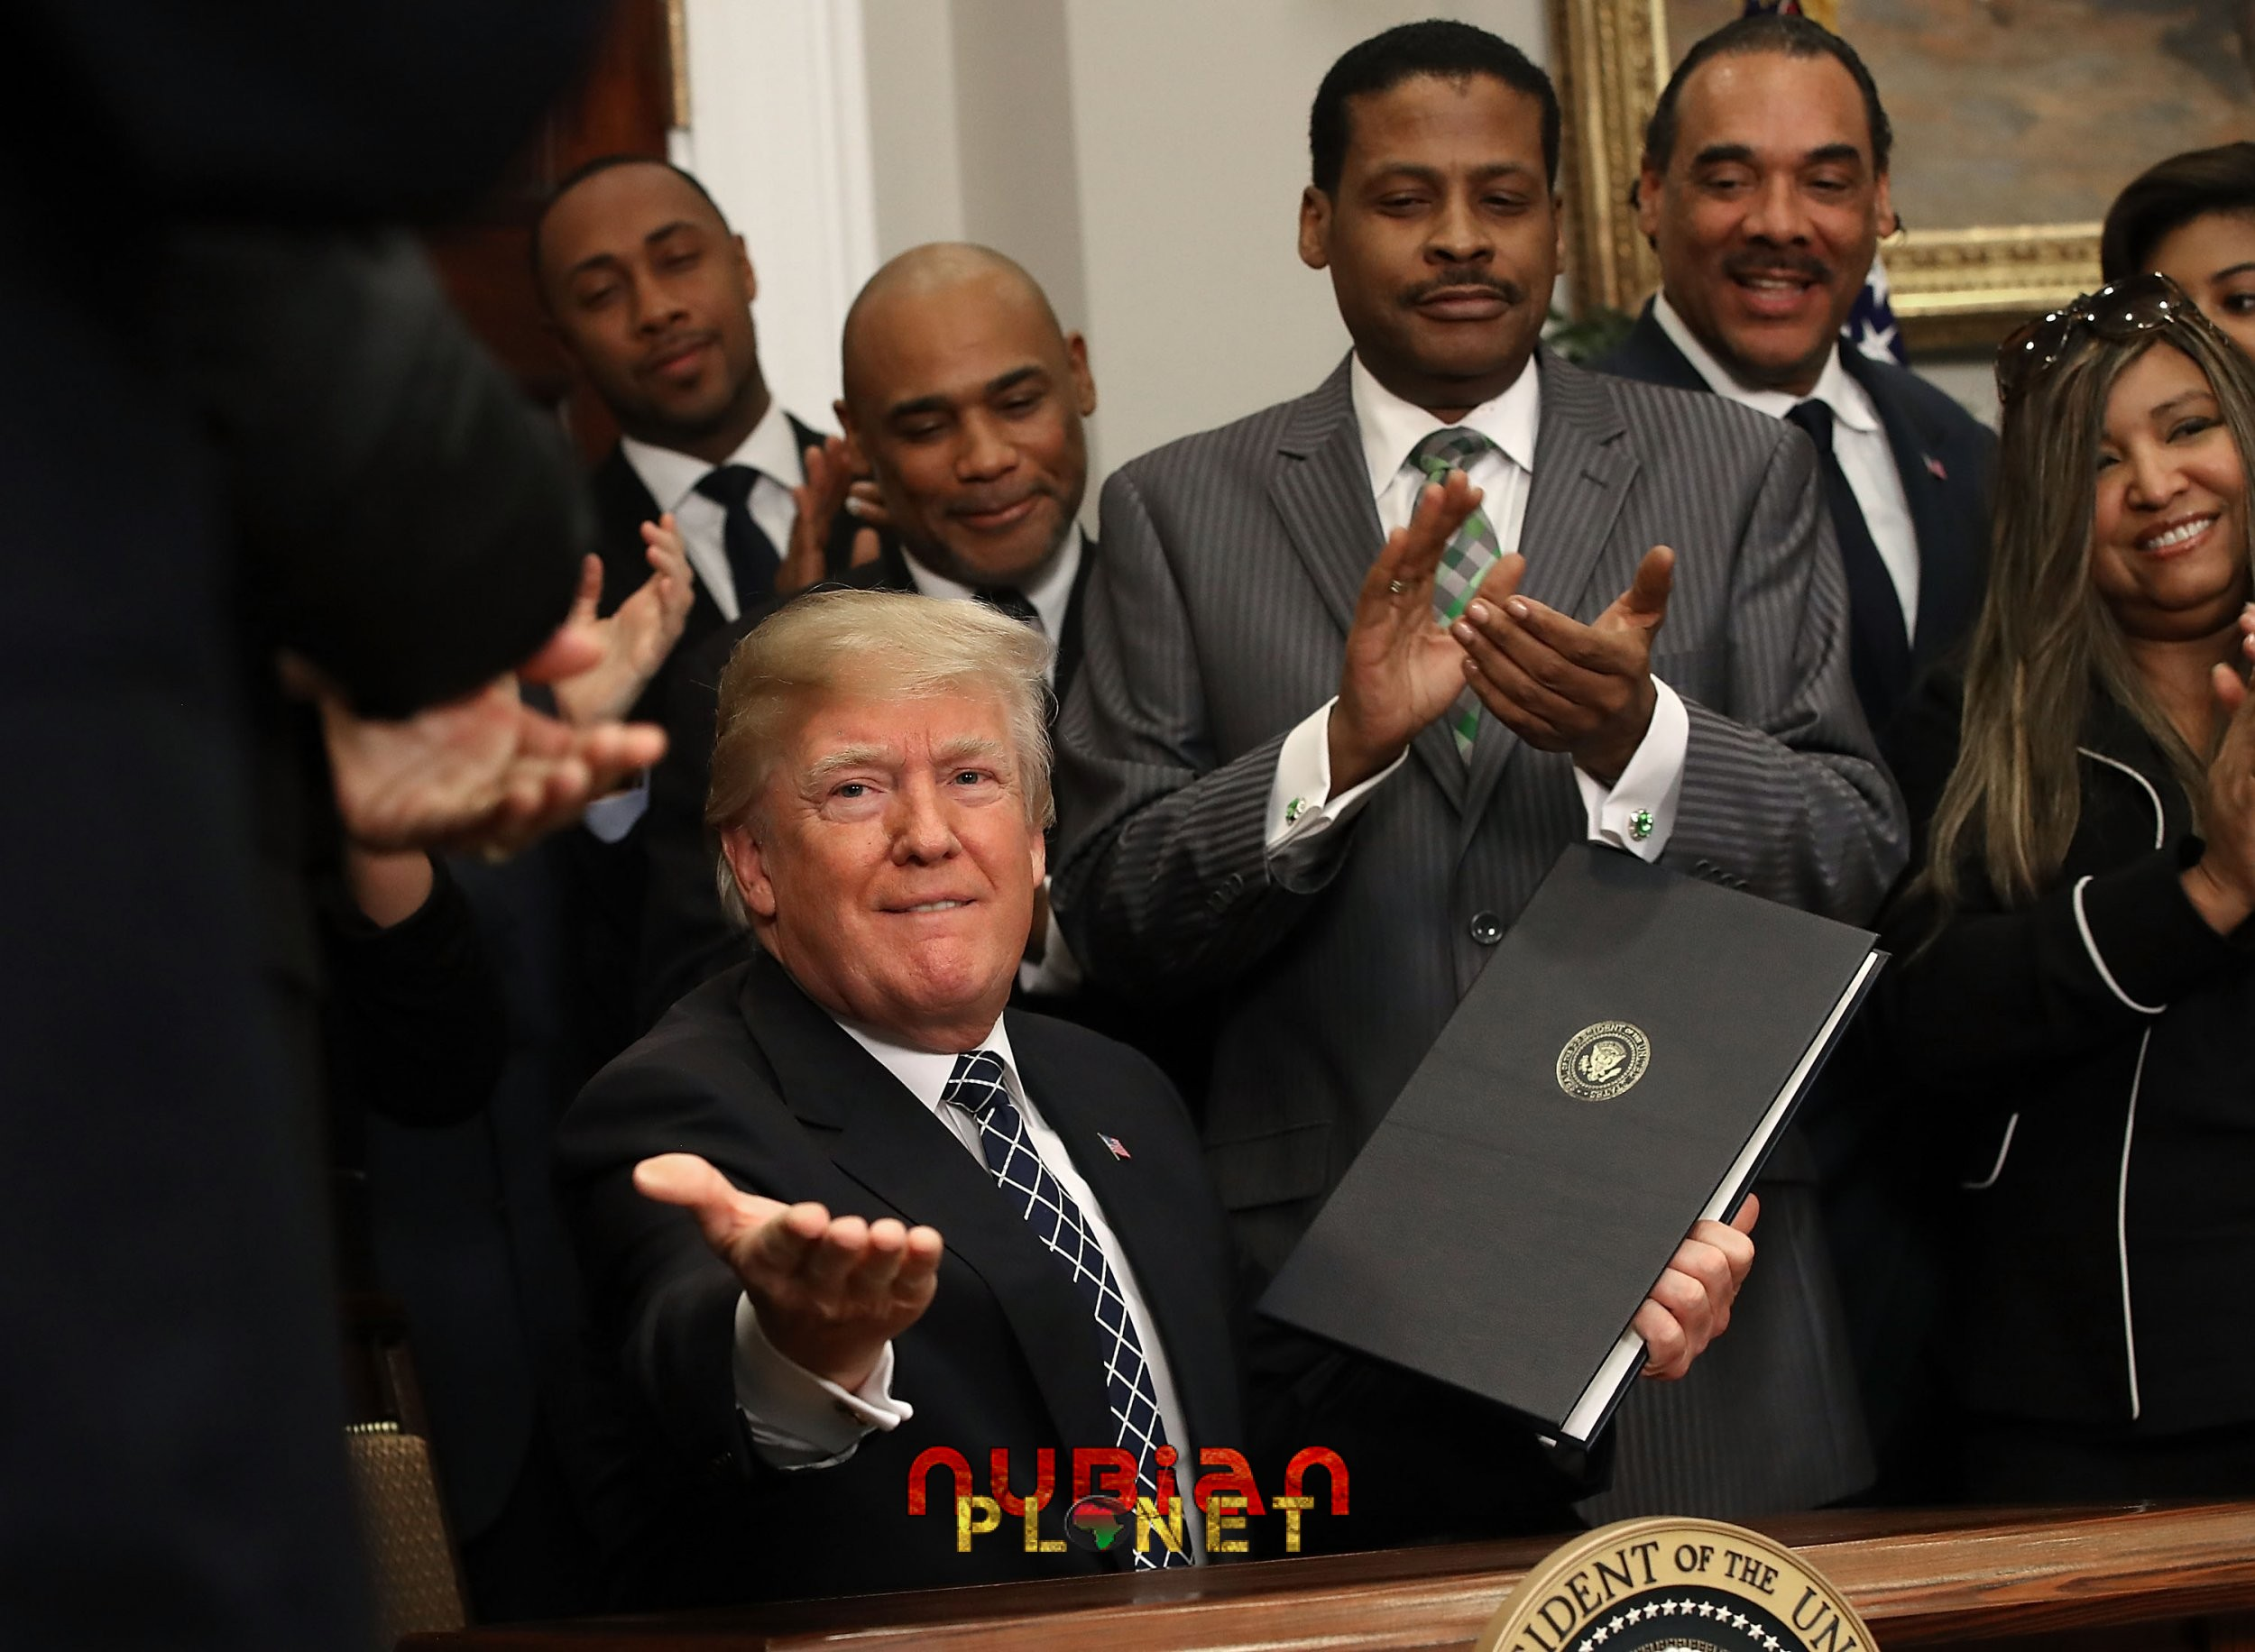 trumpism support by black community